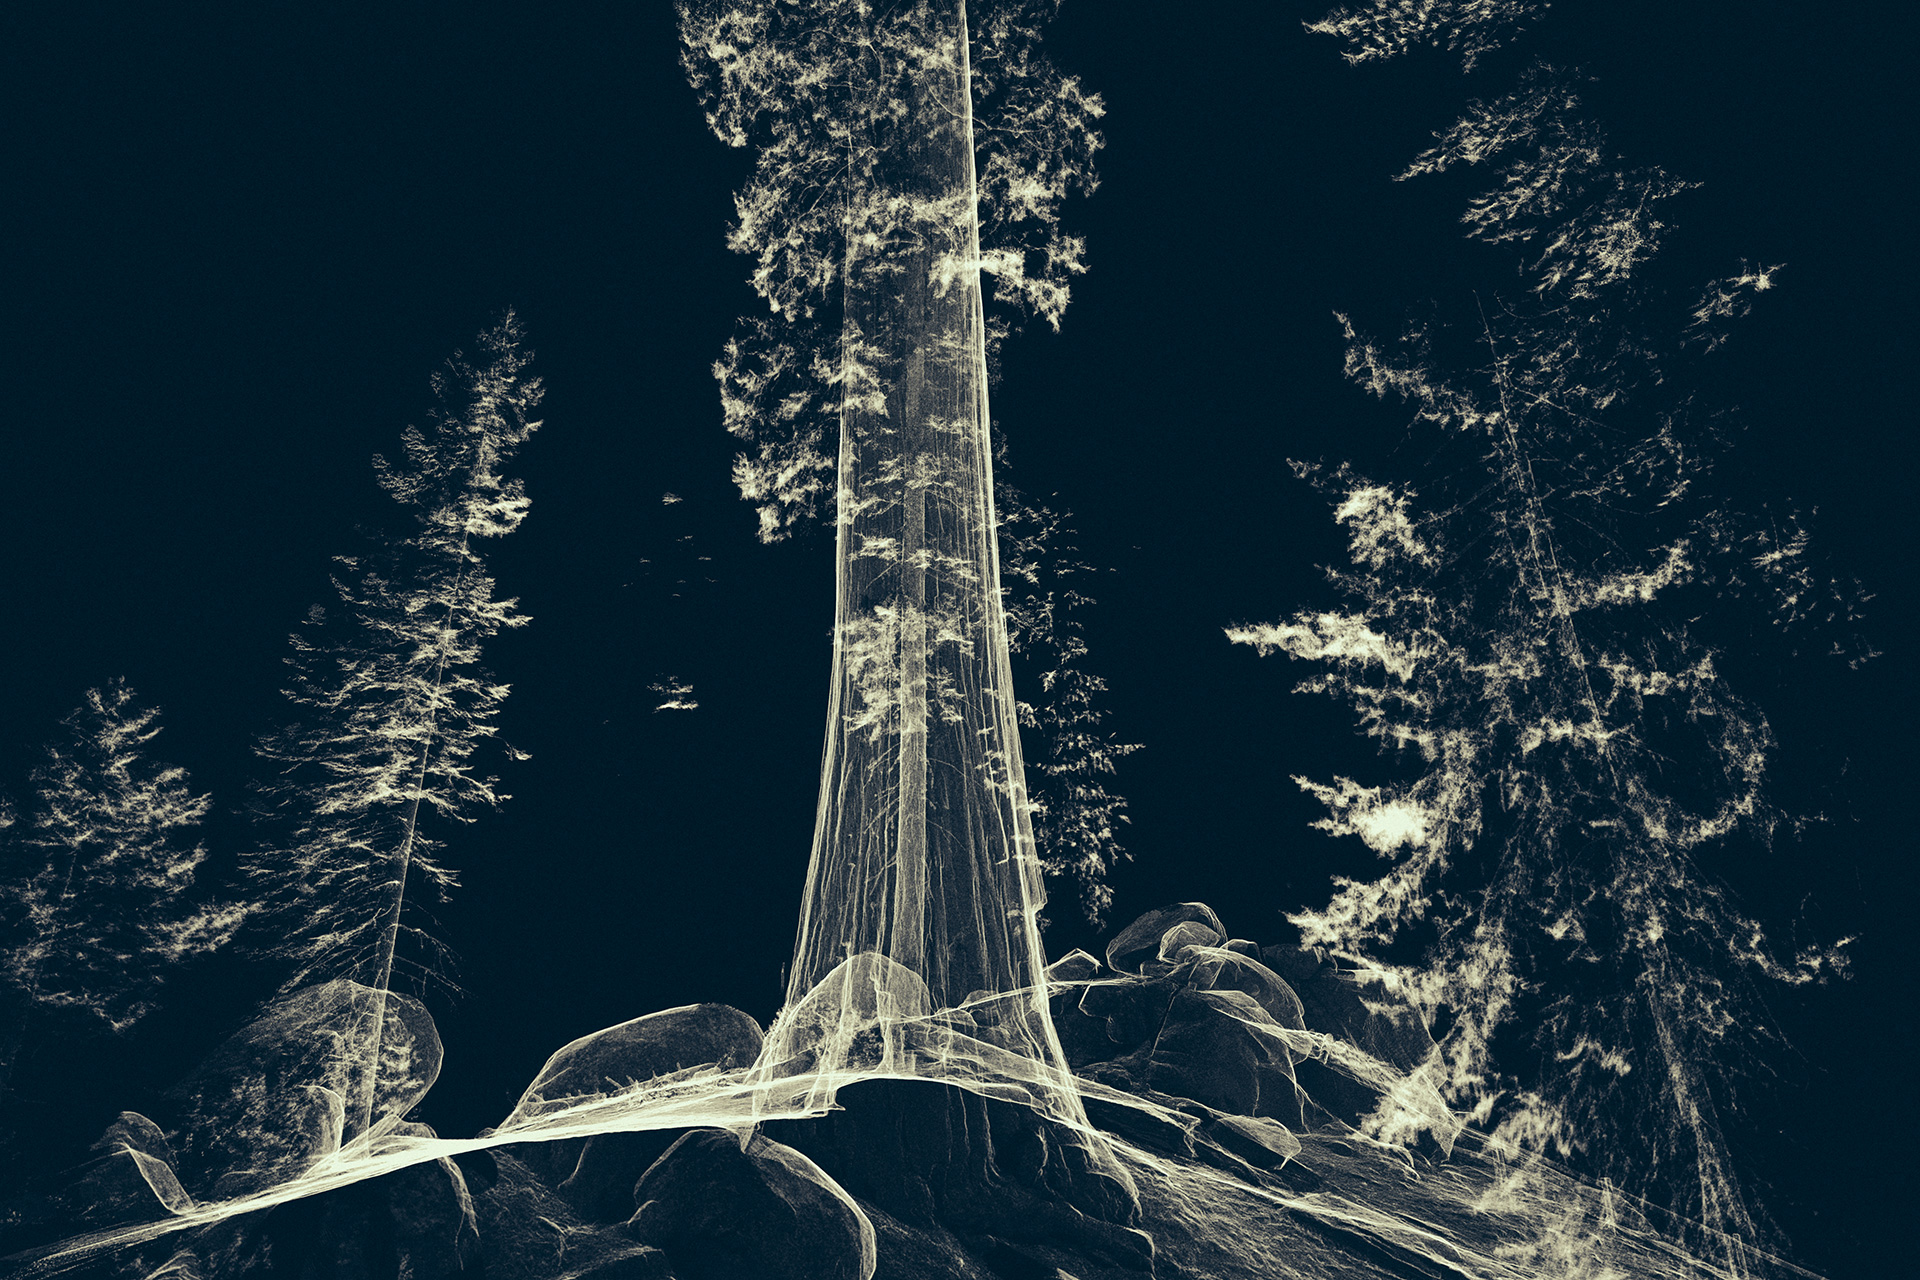 Treehugger: Wawona – an immersive digital art exhibited by Marshmallow Laser Feast at OMM | Odunpazari Modern Museum| Kengo Kuma and Associates | STIR